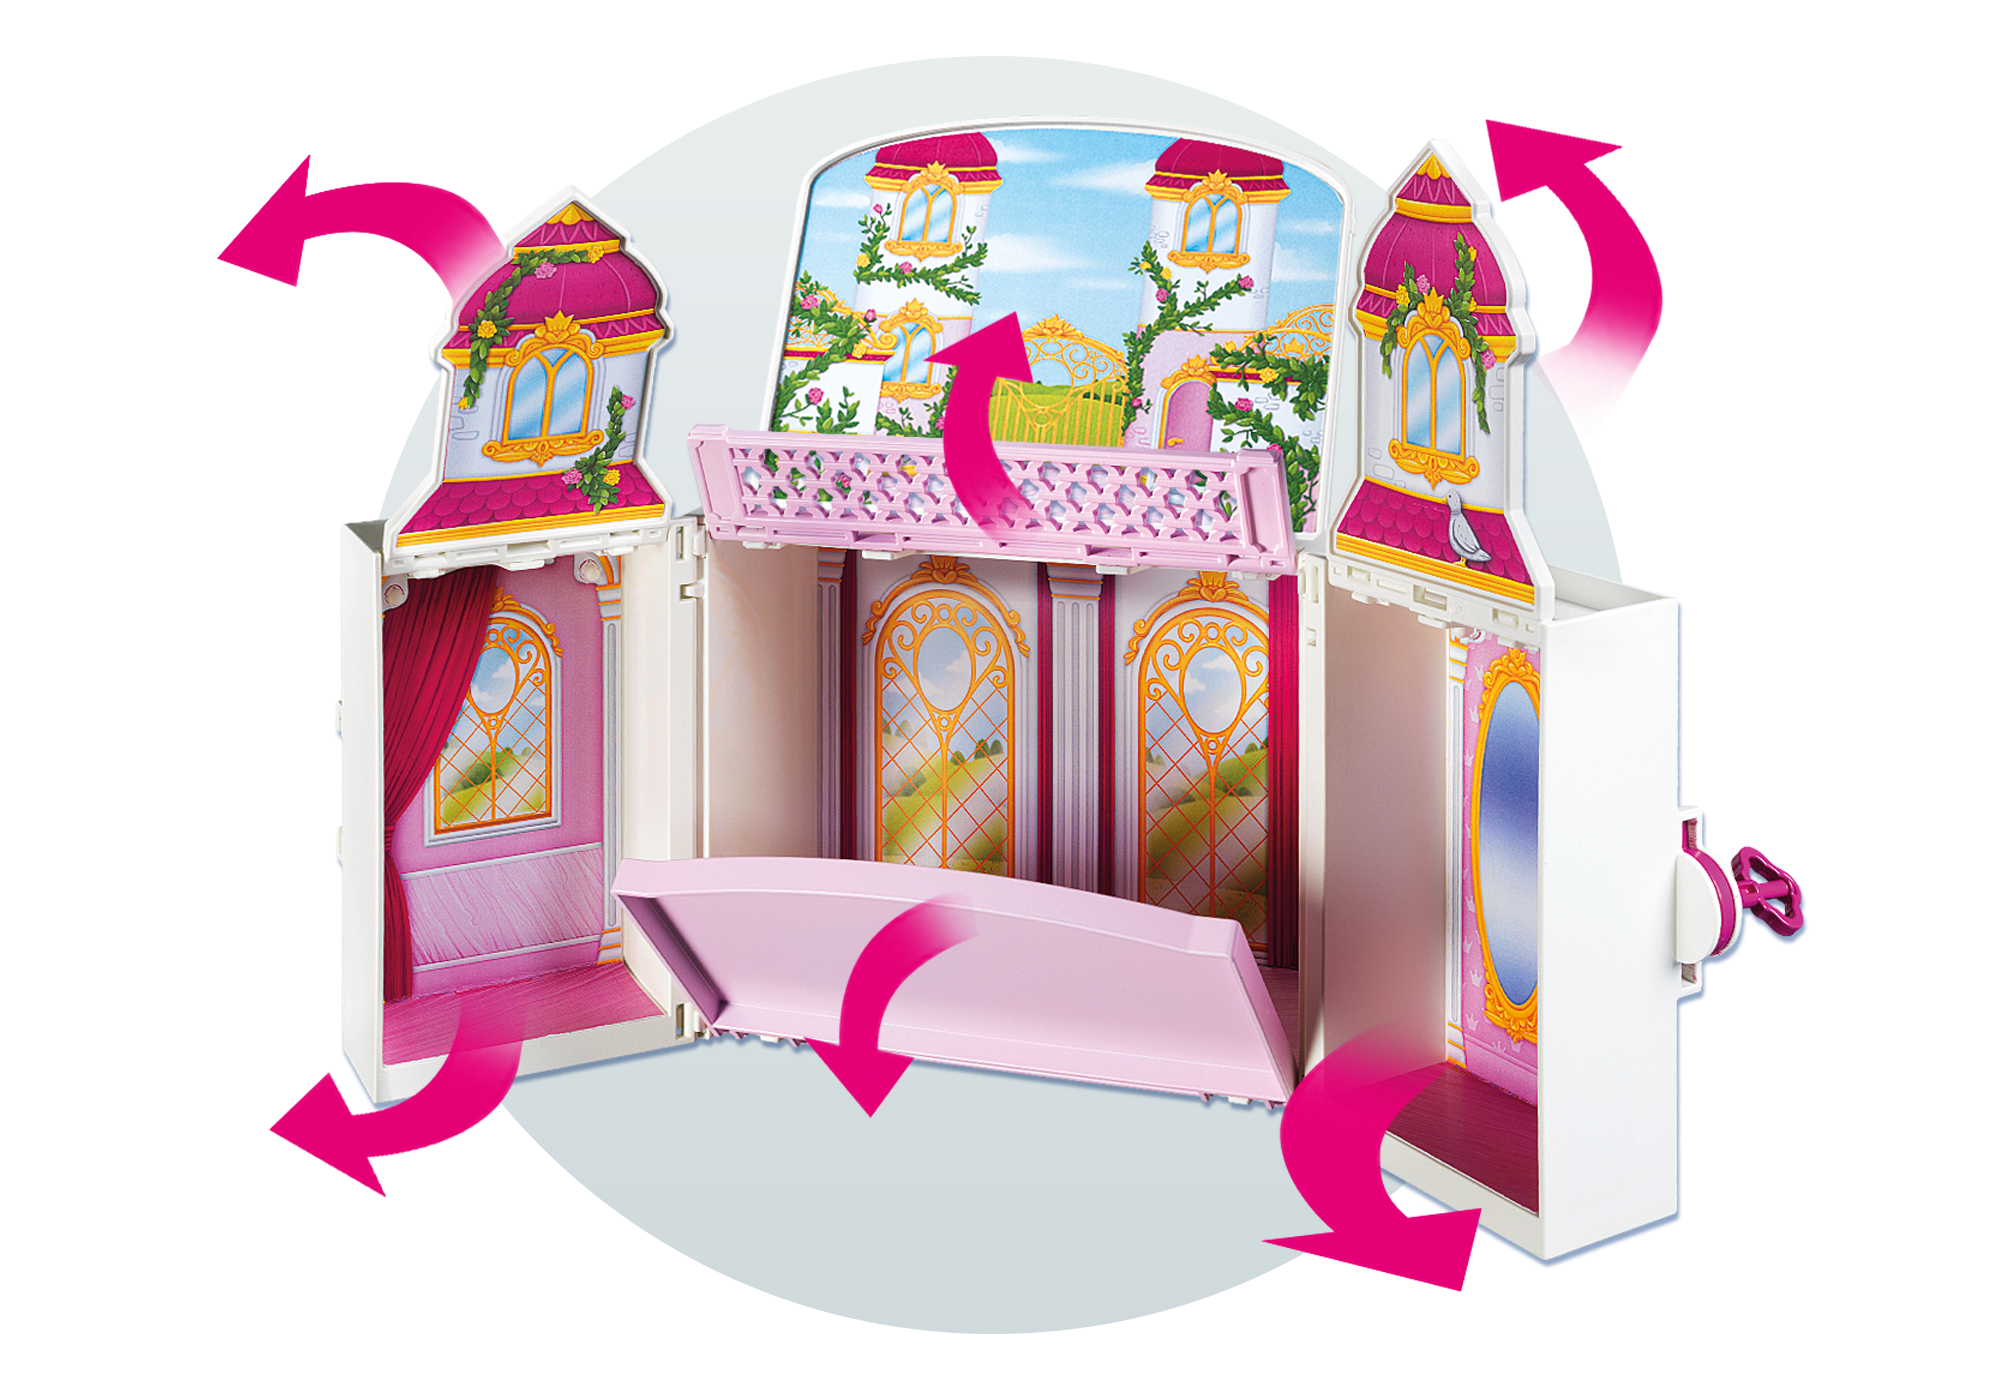 http://media.playmobil.com/i/playmobil/4898_product_extra2/My Secret Royal Palace Play Box